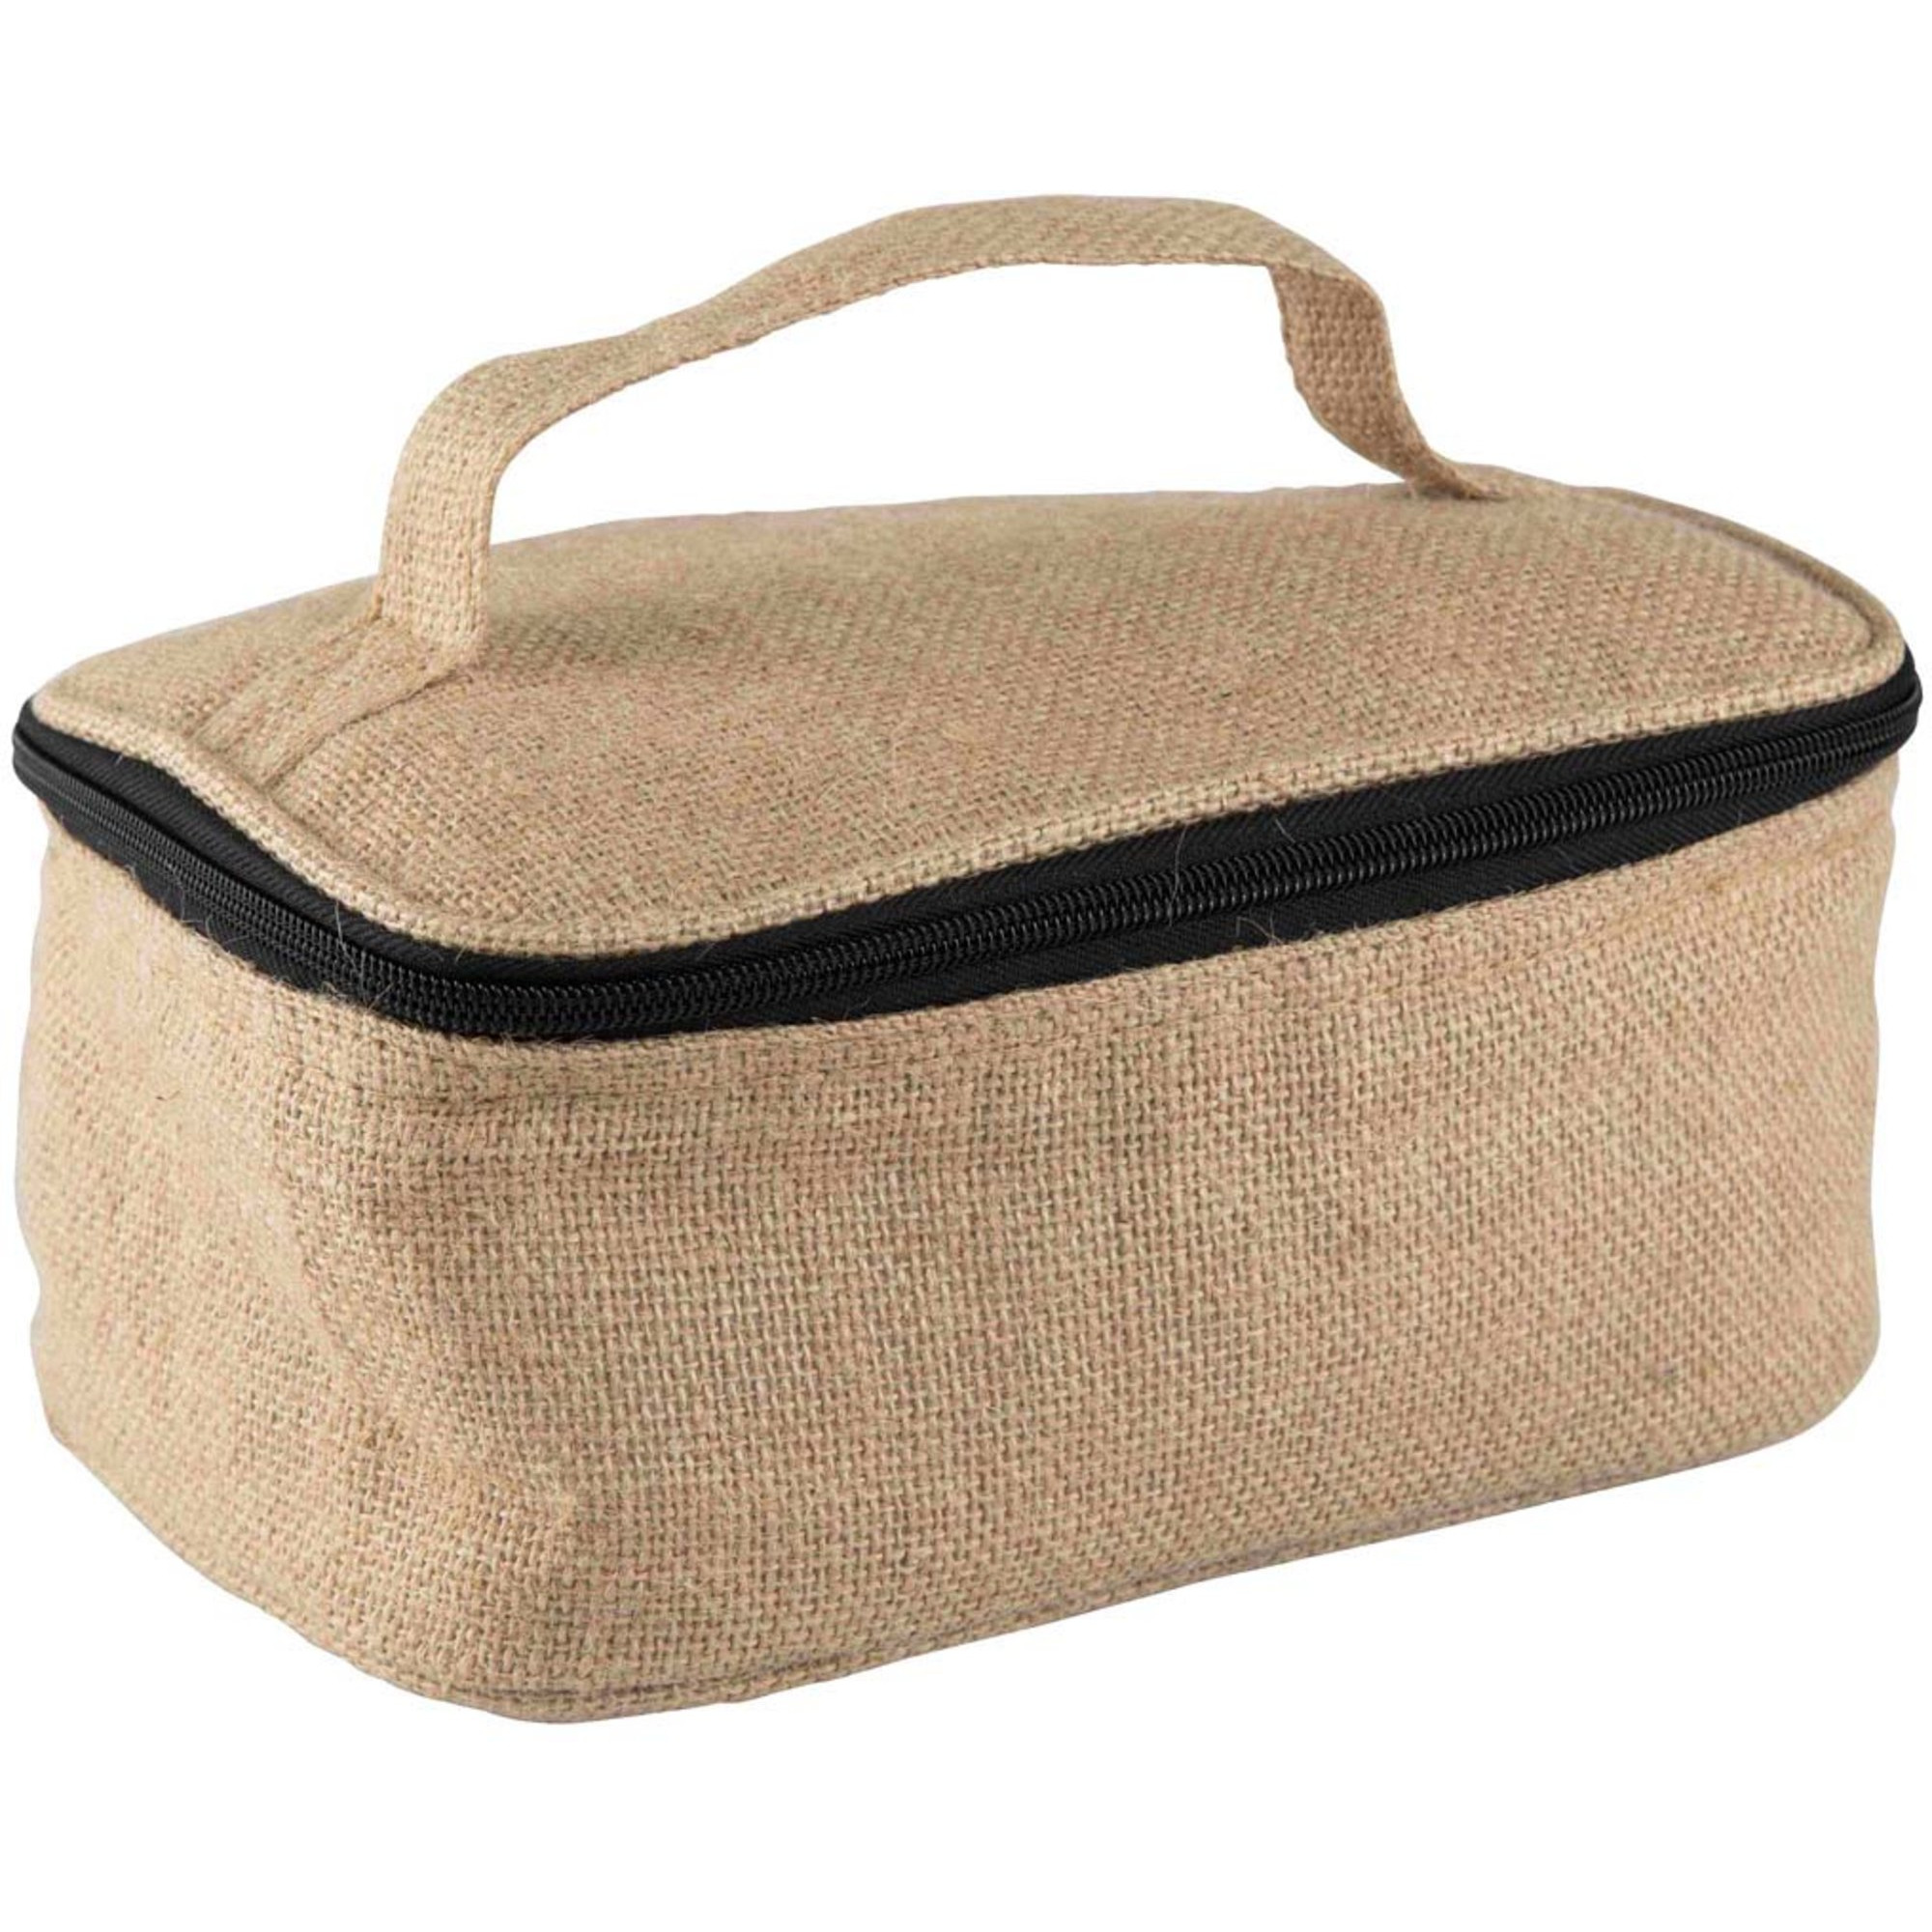 Bercato Kylväska Lunch Cooler Basket Jute